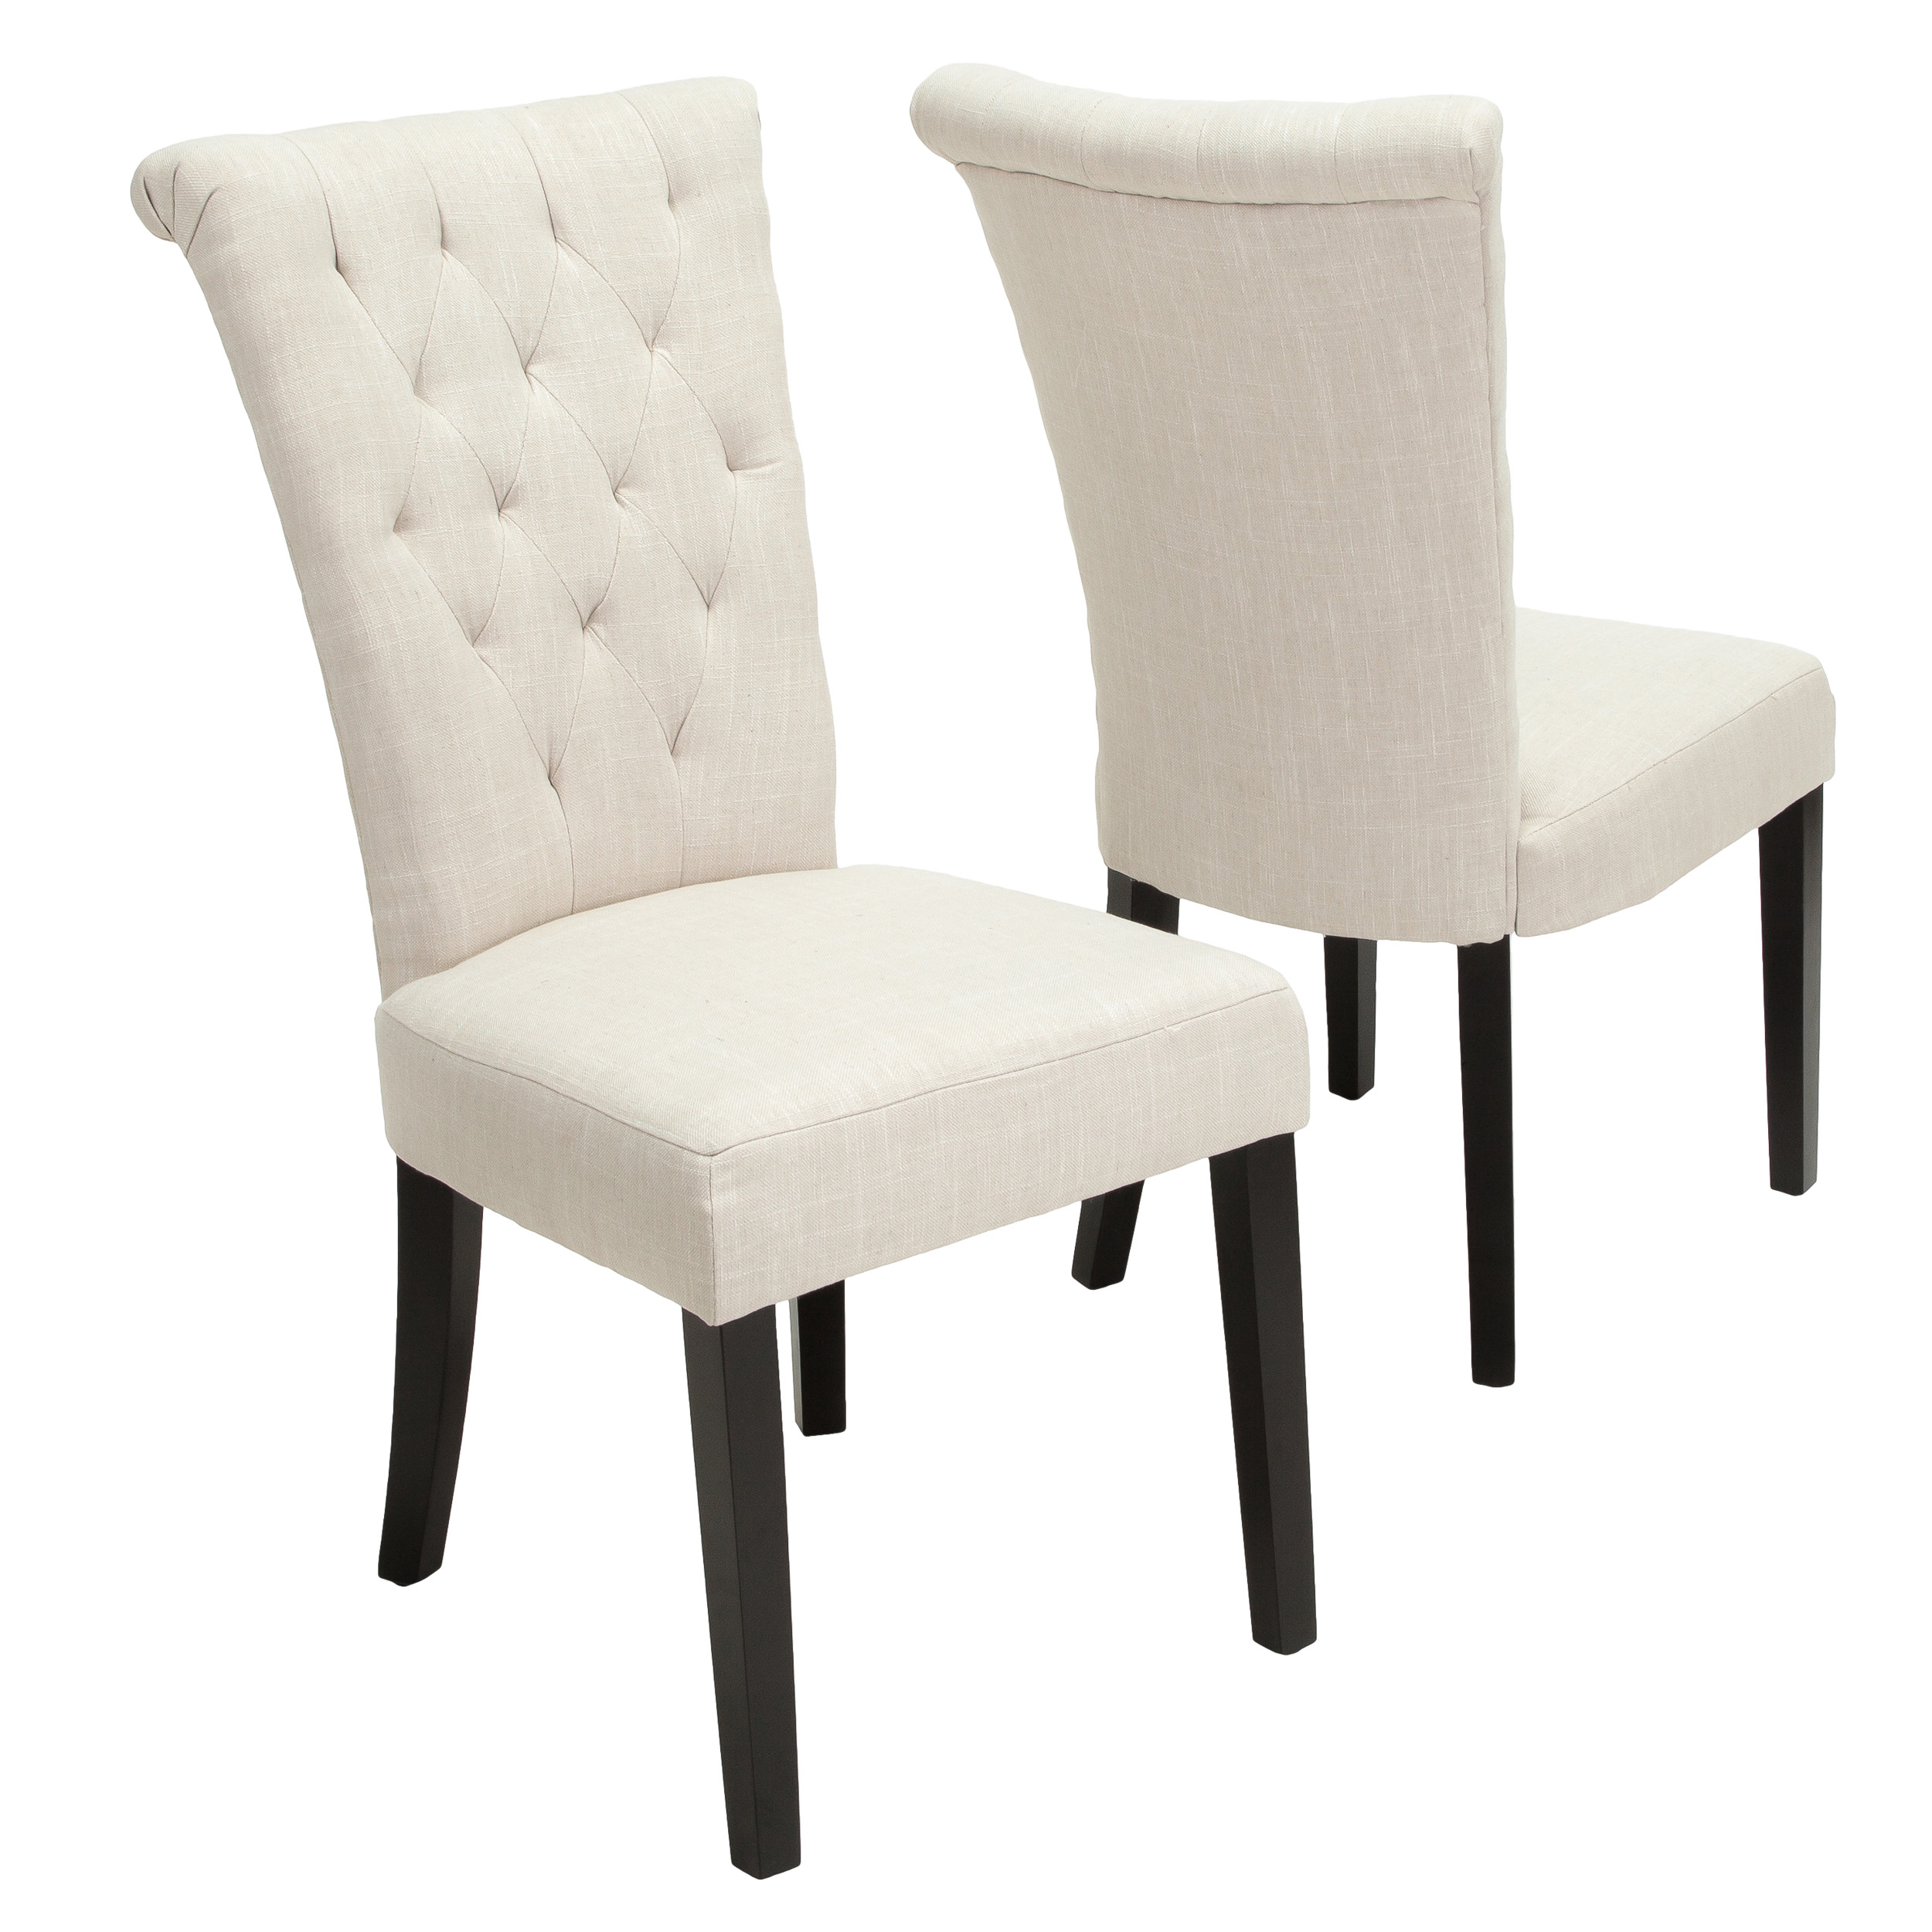 Alexandria Light Beige Fabric Wood Dining Chair (Set of 2) by GDF Studio